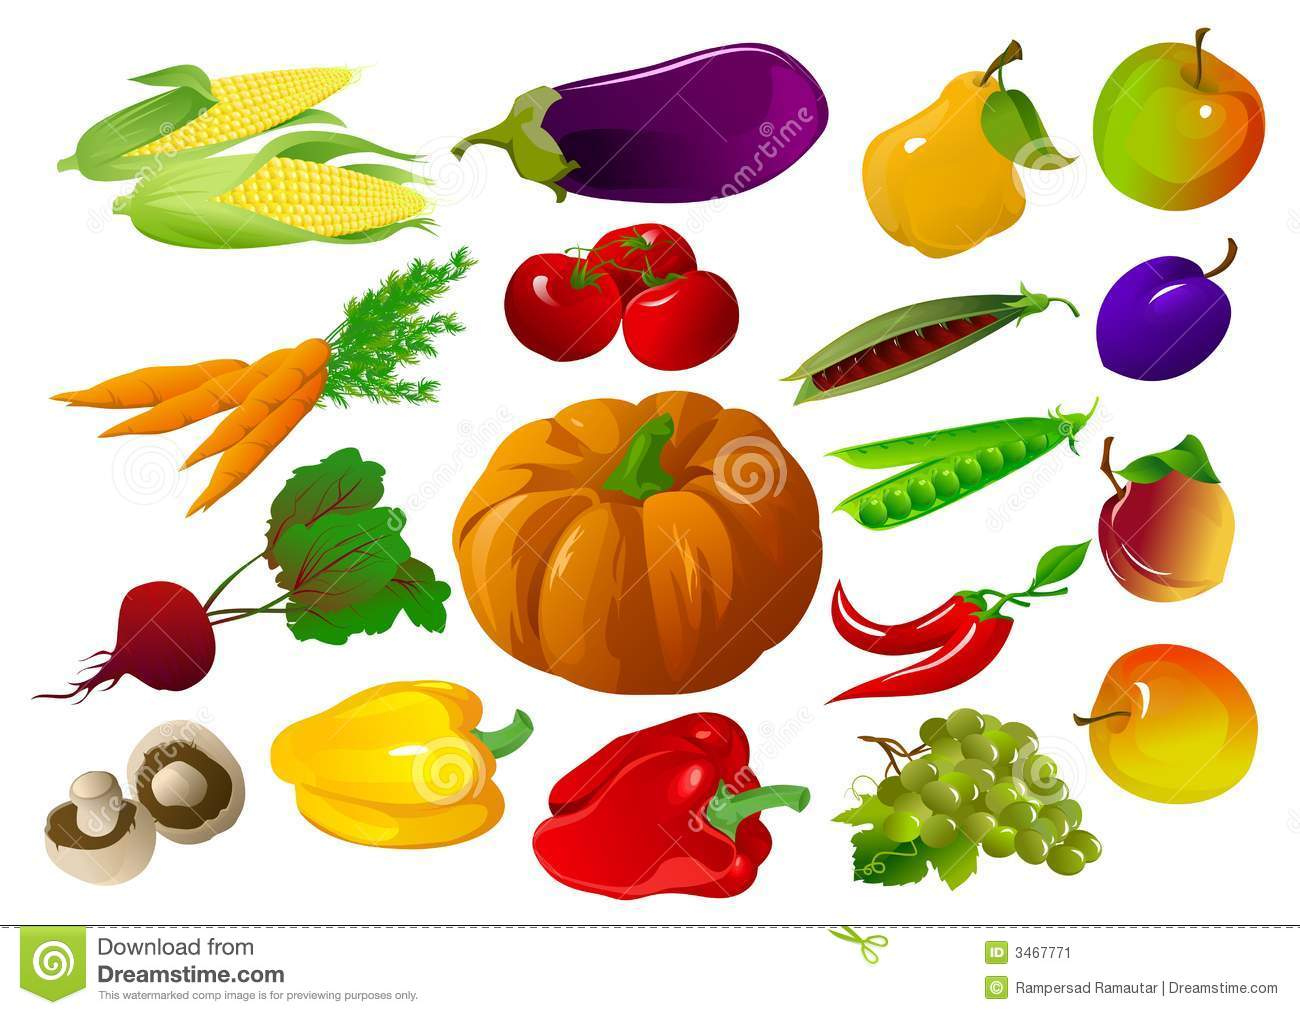 Clip Art Fruits And Vegetables Clipart fruits and veggies clipart kid vegetables stock image 3467771